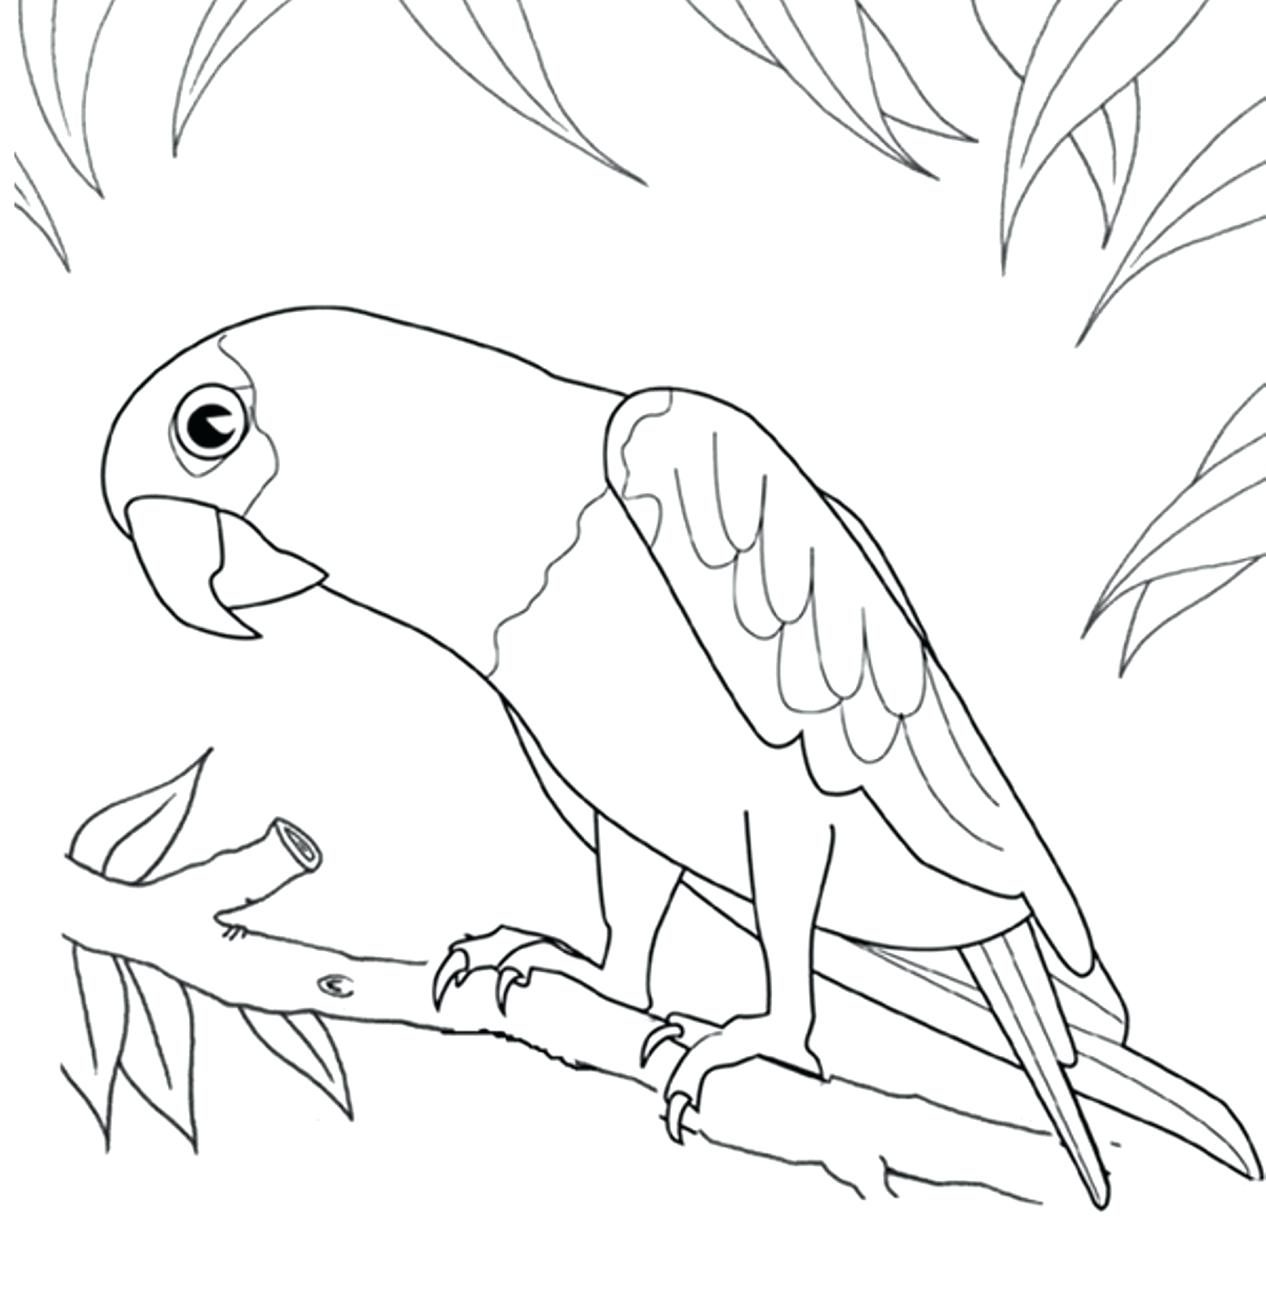 Parrot Flying Drawing at GetDrawings.com | Free for personal use ...